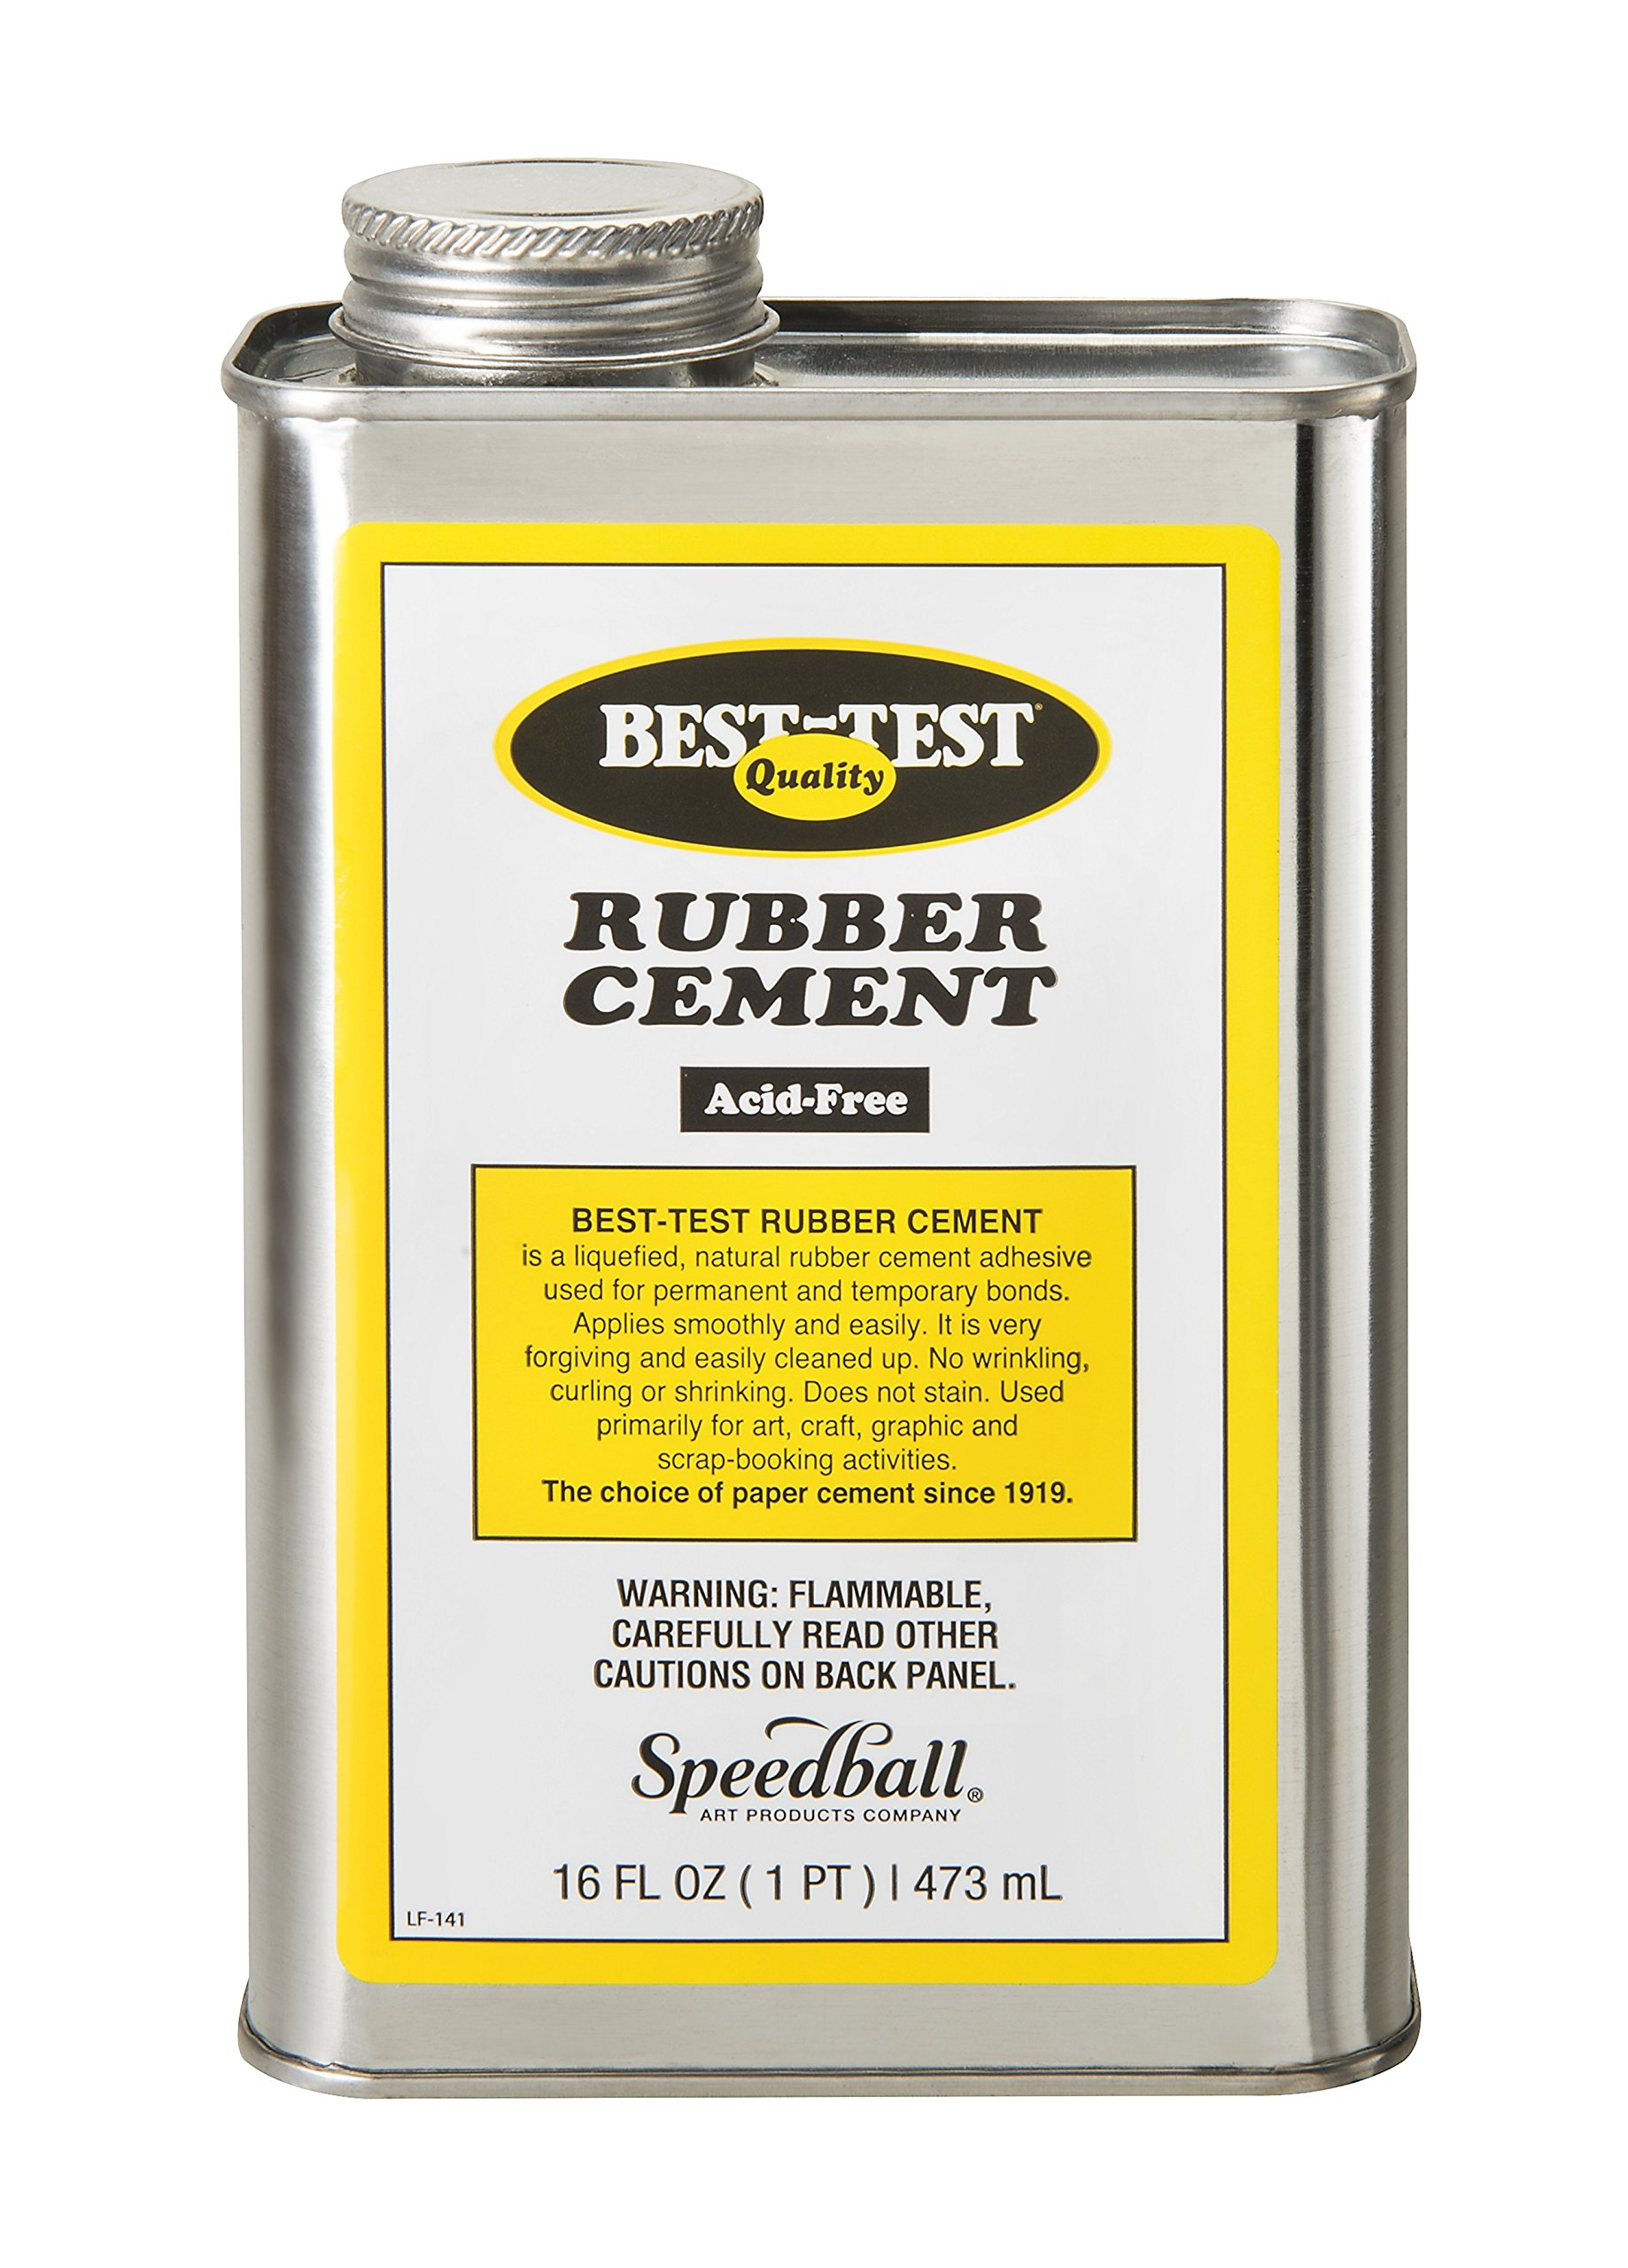 Best-Test Rubber Cement 16OZ Can by Union Rubber